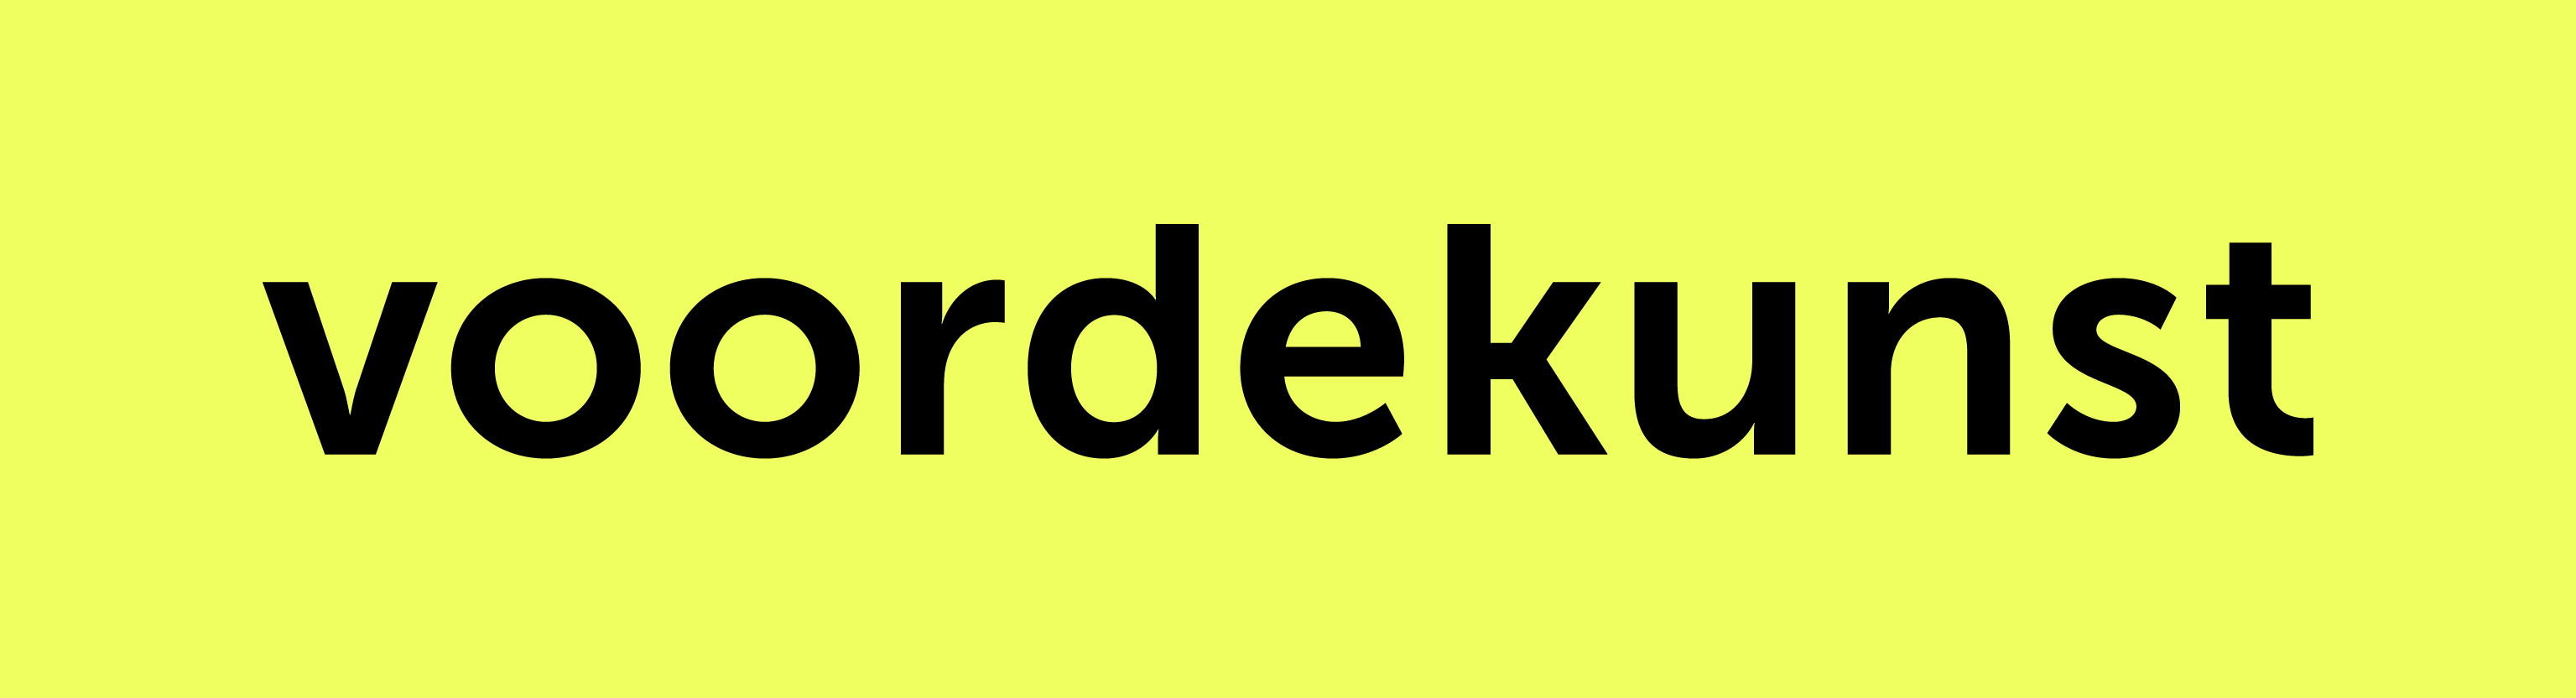 voordekunst_logo_regular_yellow